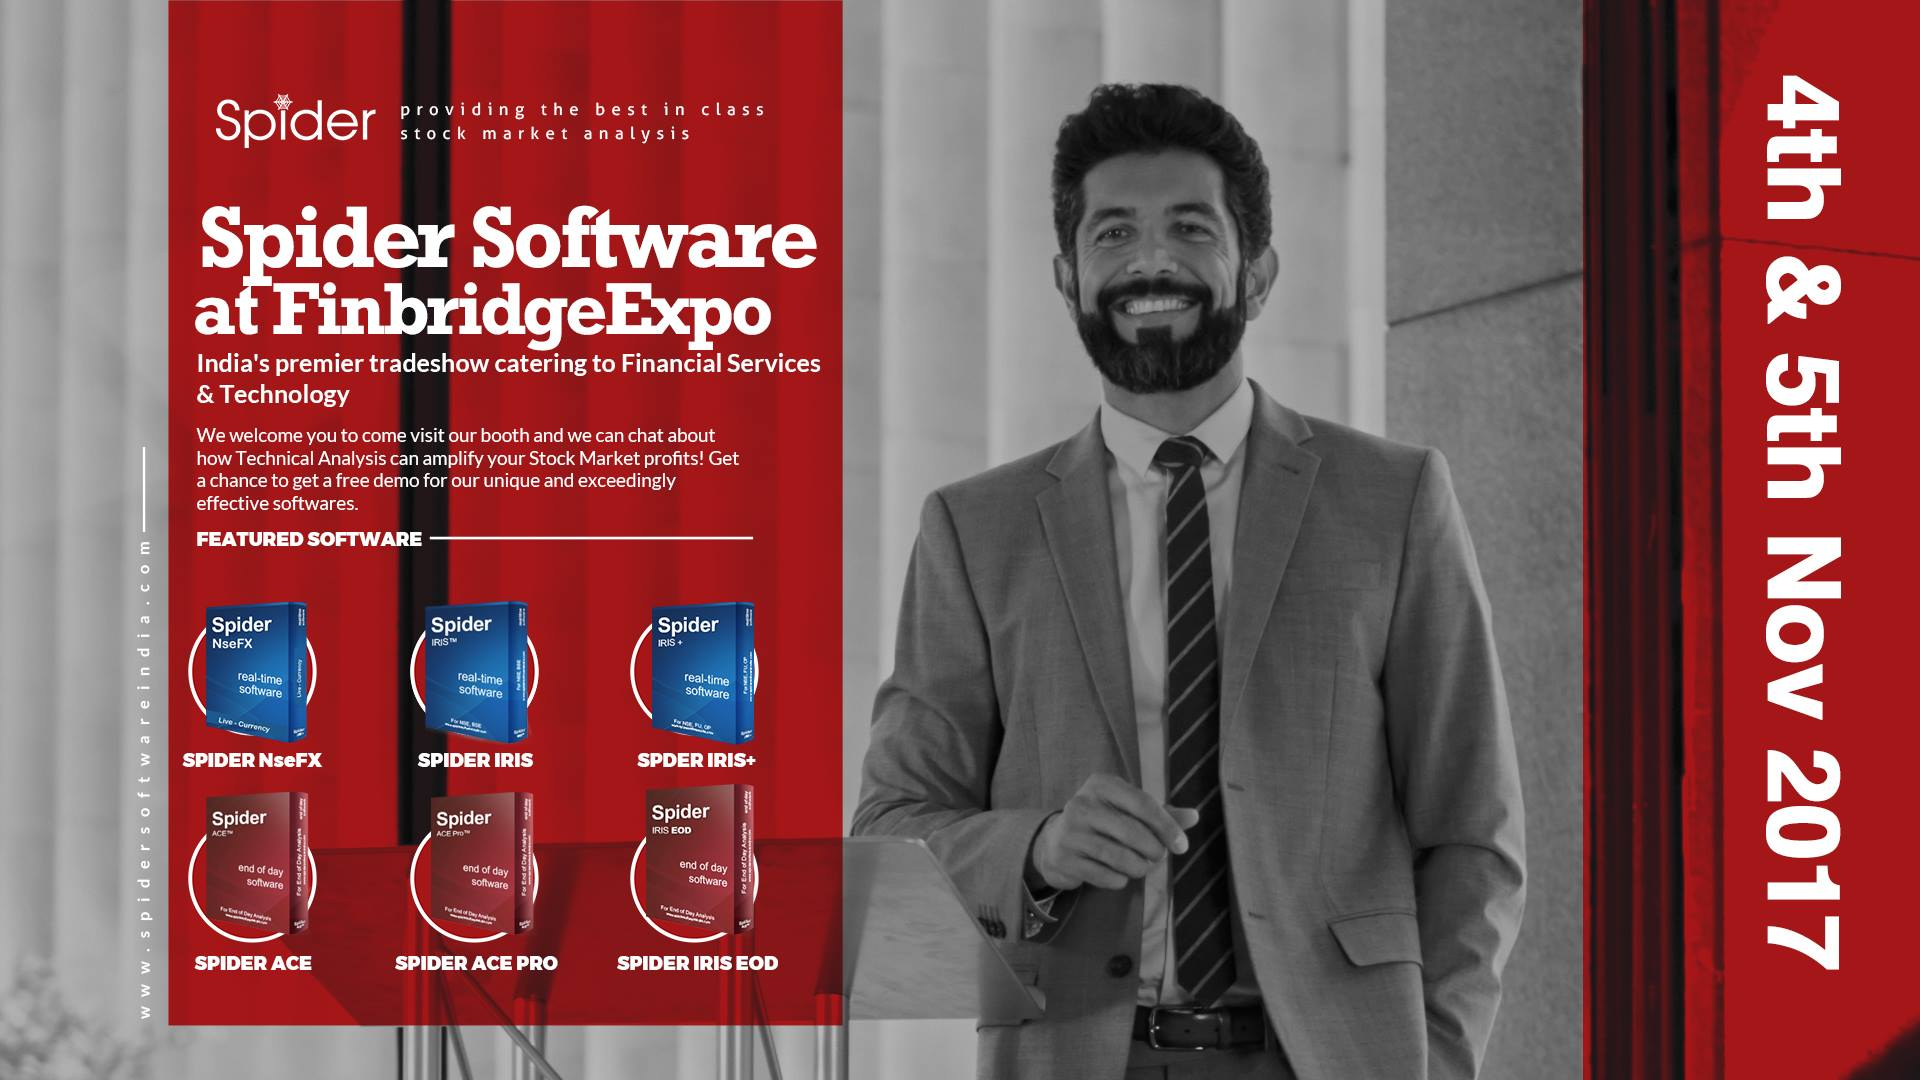 SpiderSoftware Finbridge Expo